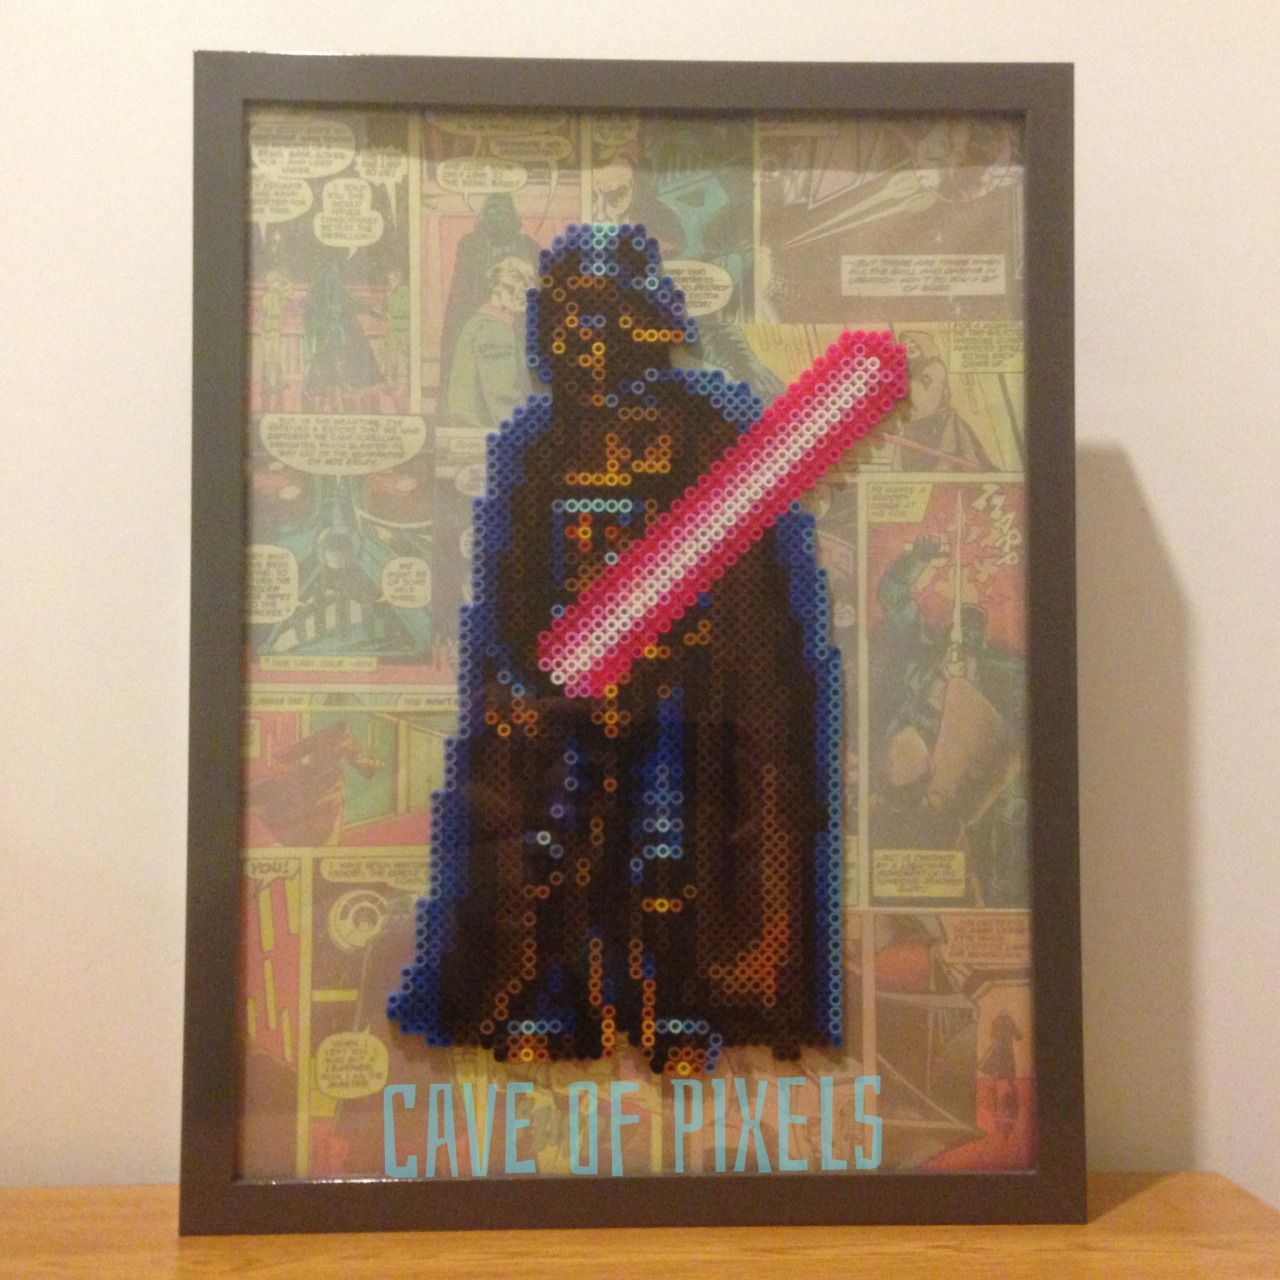 Darth Vader Perler Bead Sprite Framed With Comics Collage